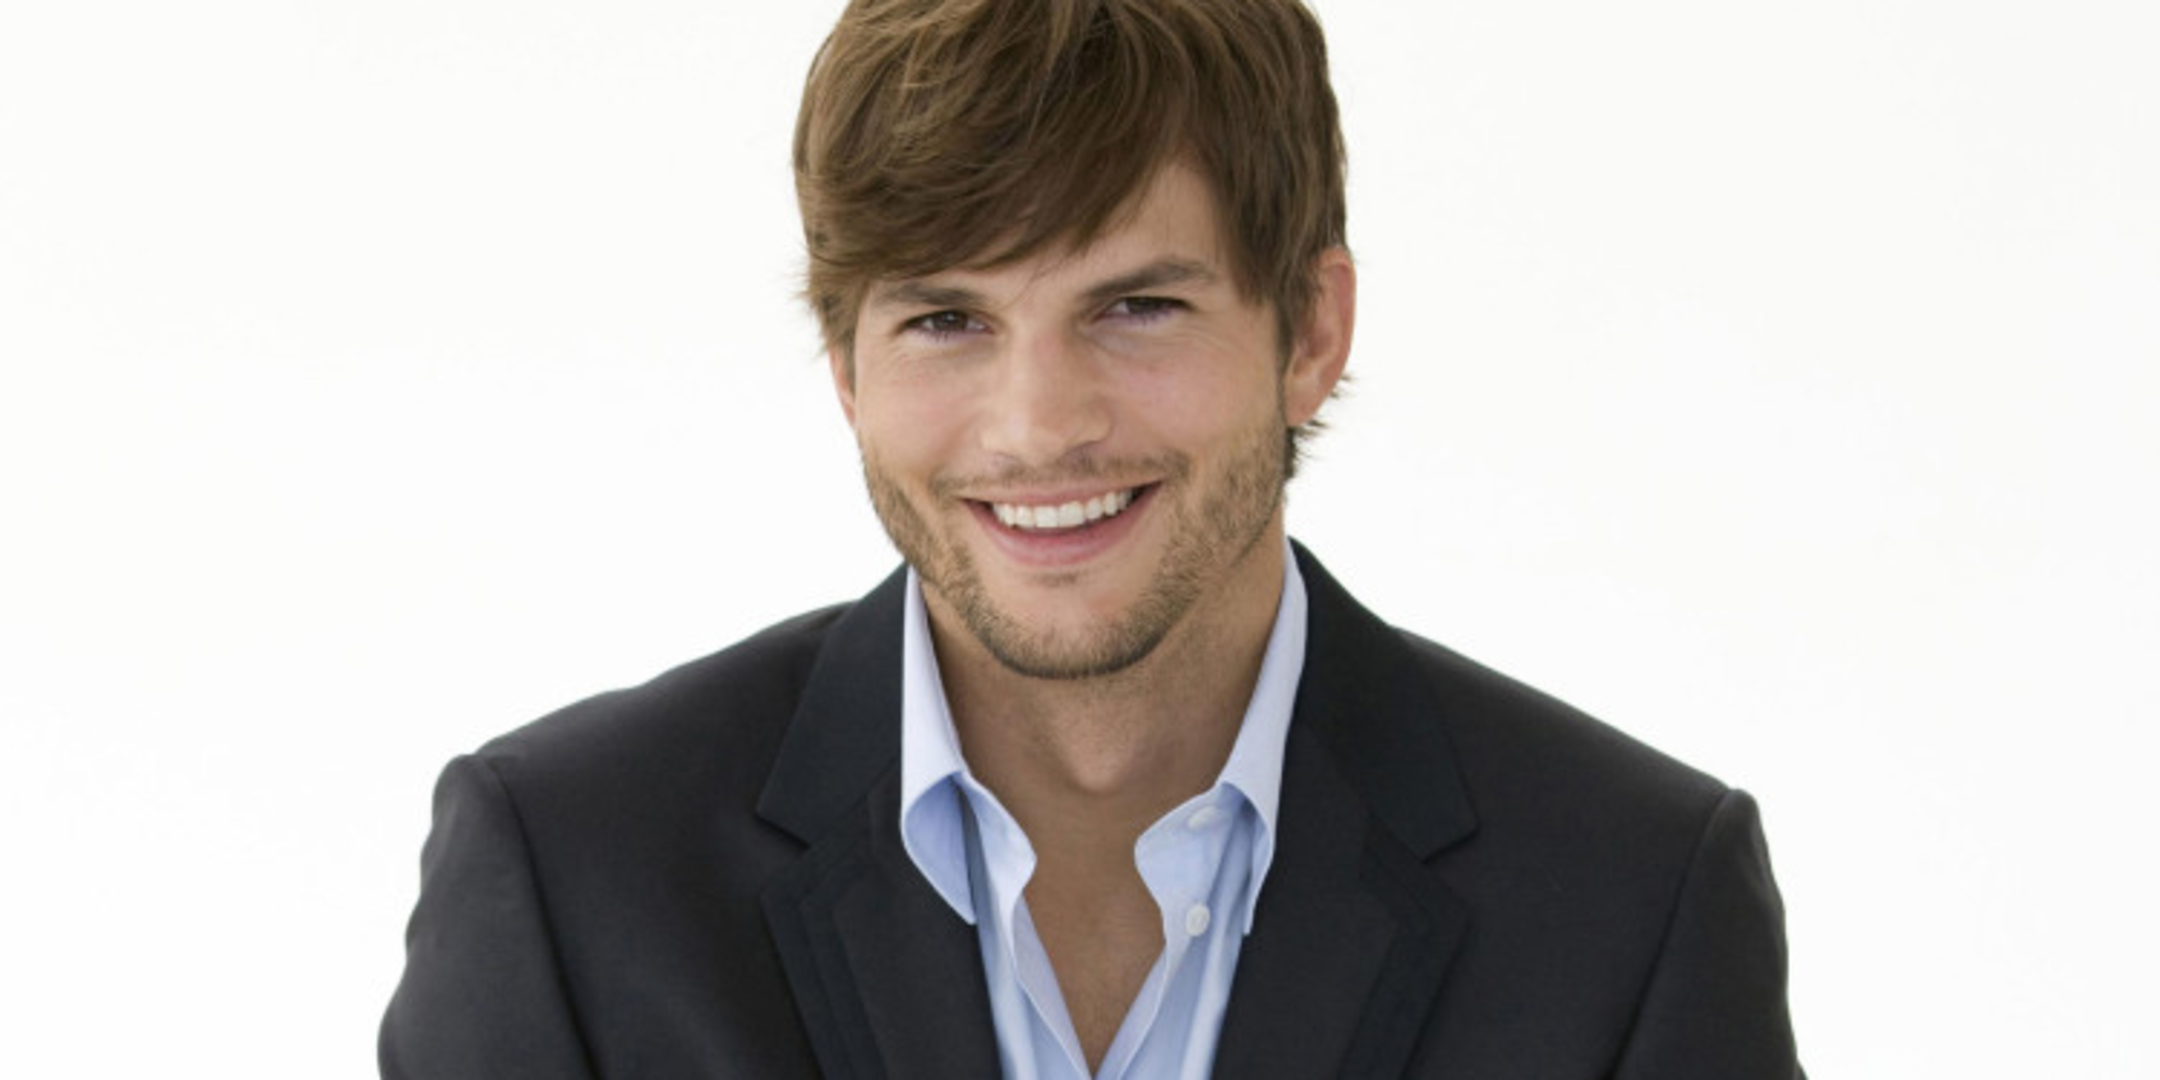 Ashton kutcher facebook investment opportunity real estate investment group miami